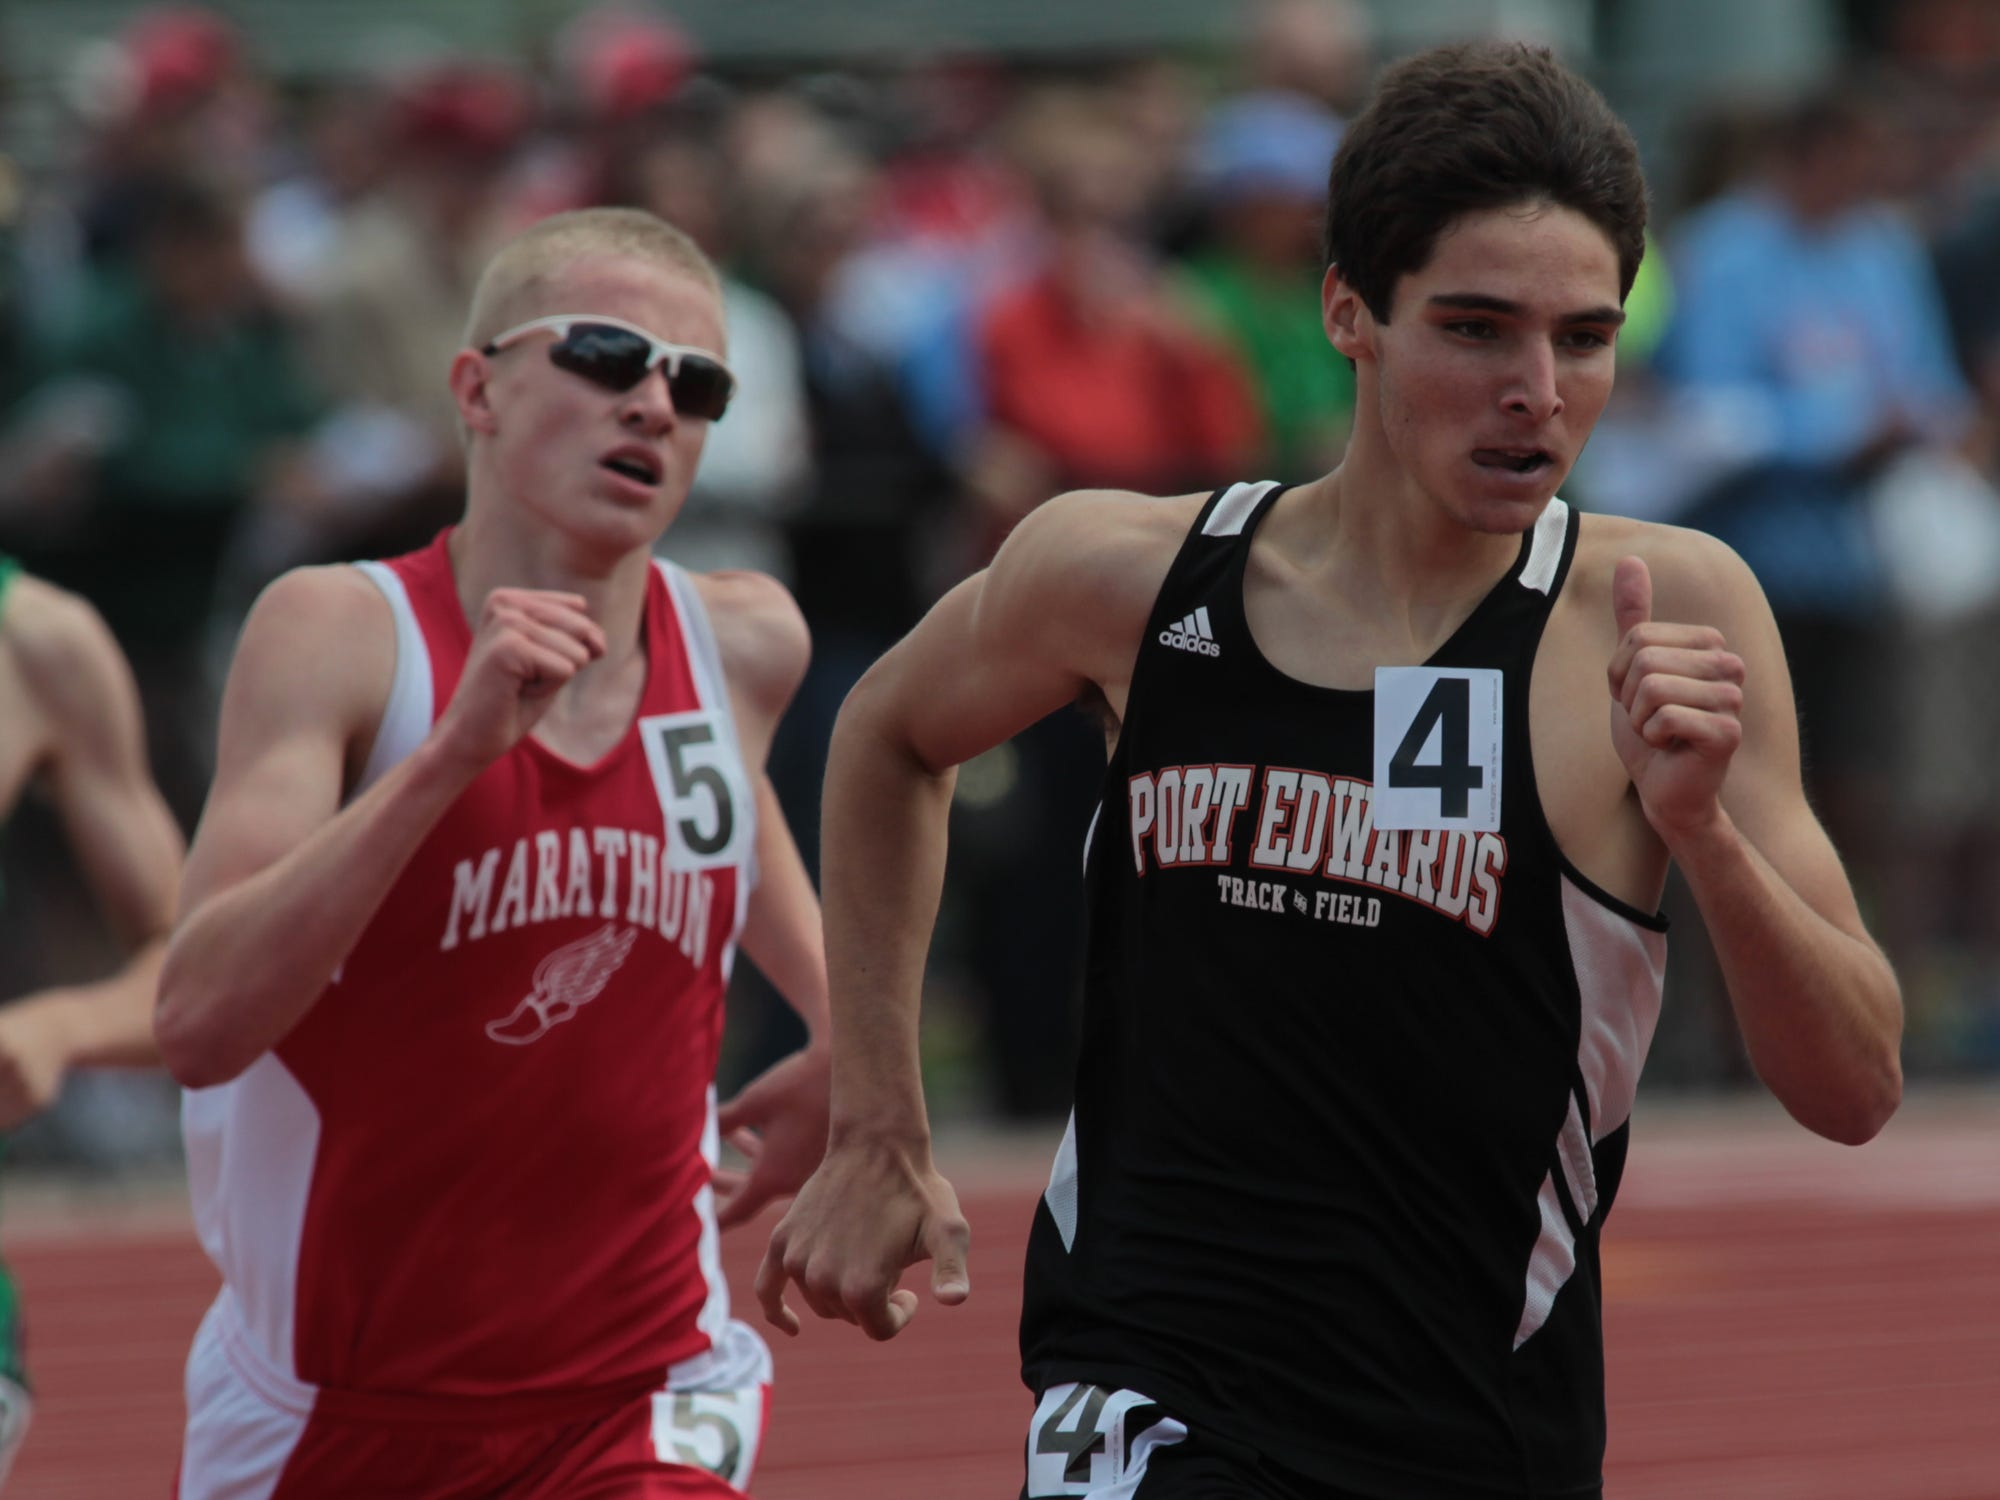 Port Edwards senior Josh Schraeder medaled in the 800 and 3,200 meters at the state track meet a year ago. This year he is gunning for gold in those two races and the 1,600 and improving on his school records.